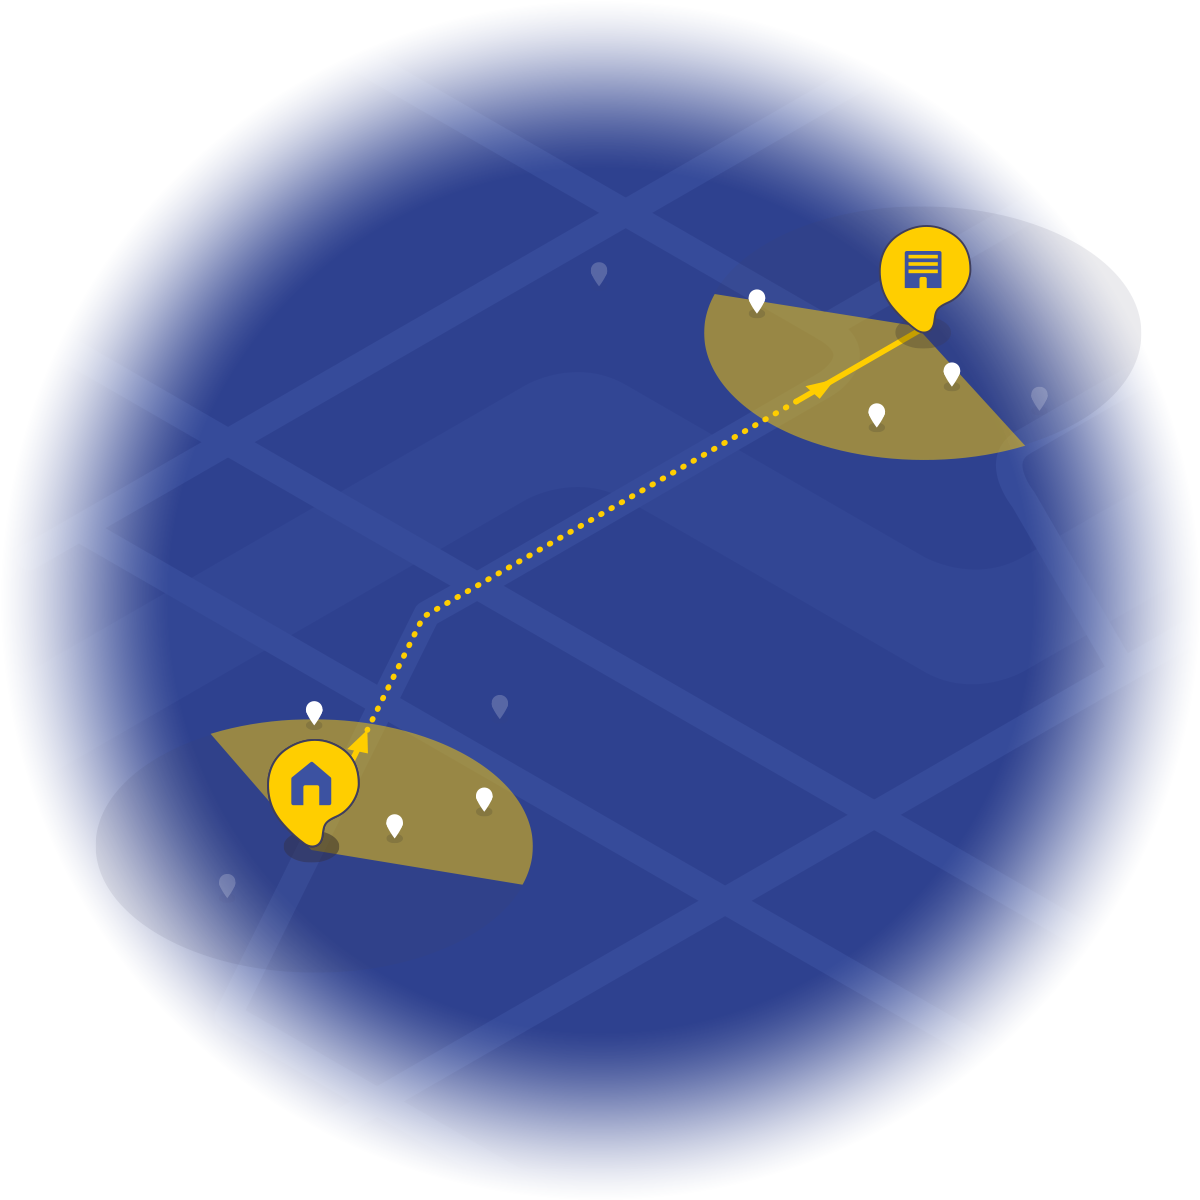 Search algorithm the radius of the center of departure and arrival